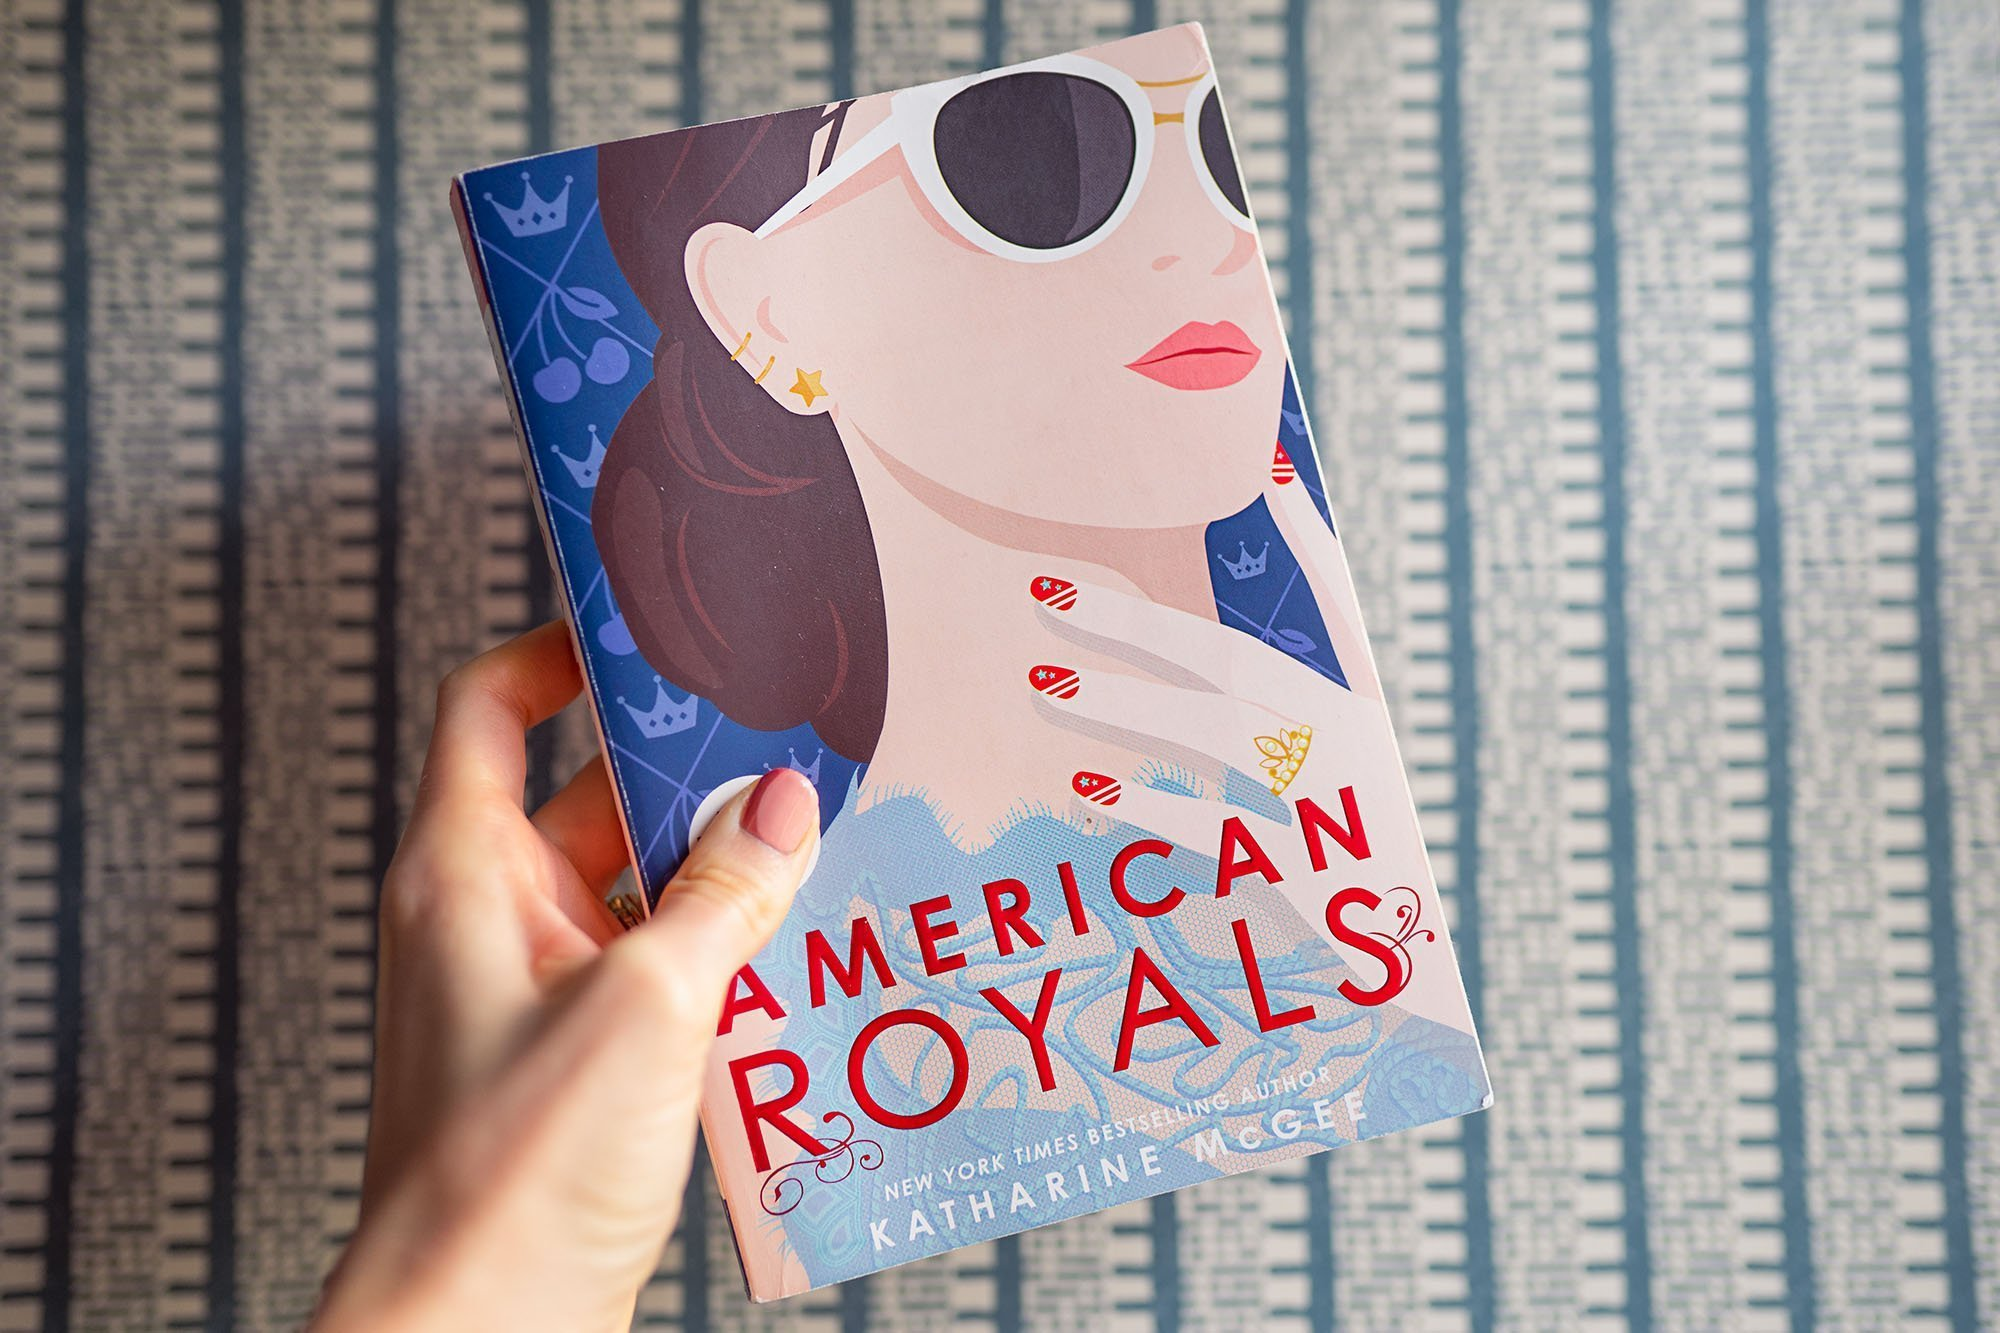 Horizontal - September's Ashley Brooke Book Club - American Royals